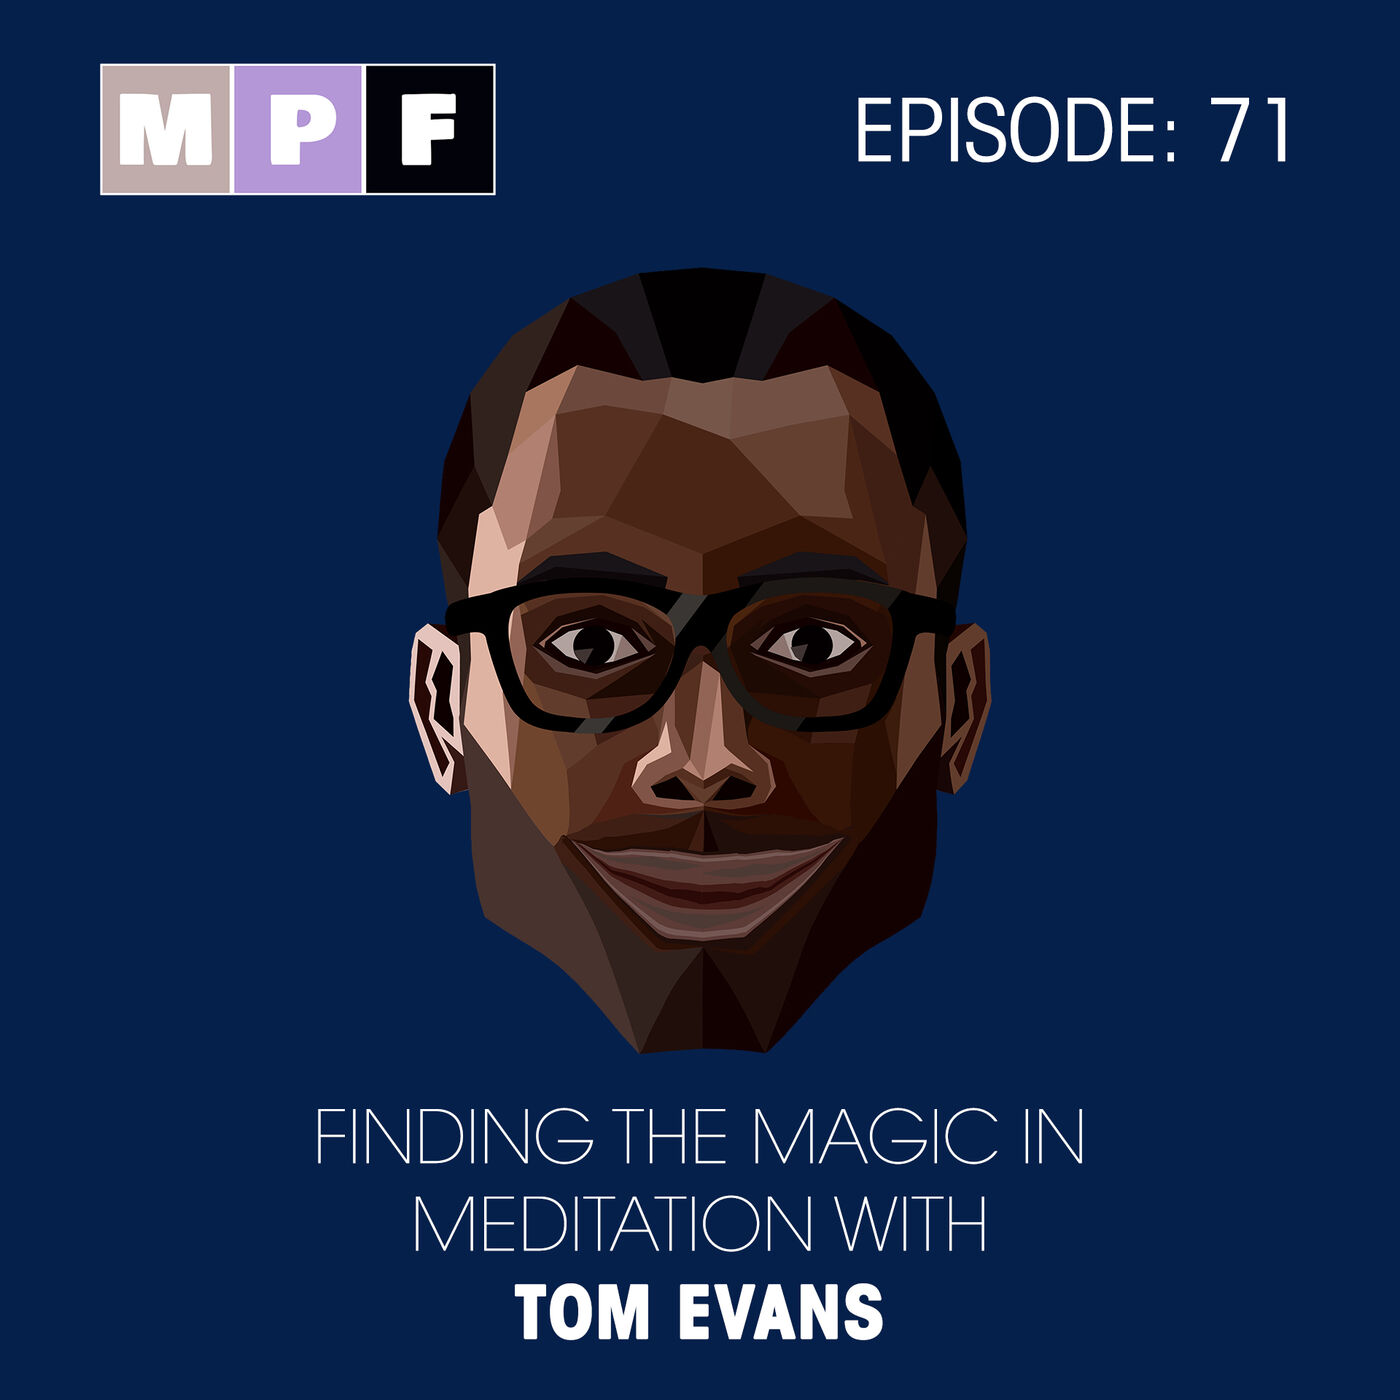 Finding The Magic In Meditation with Tom Evans